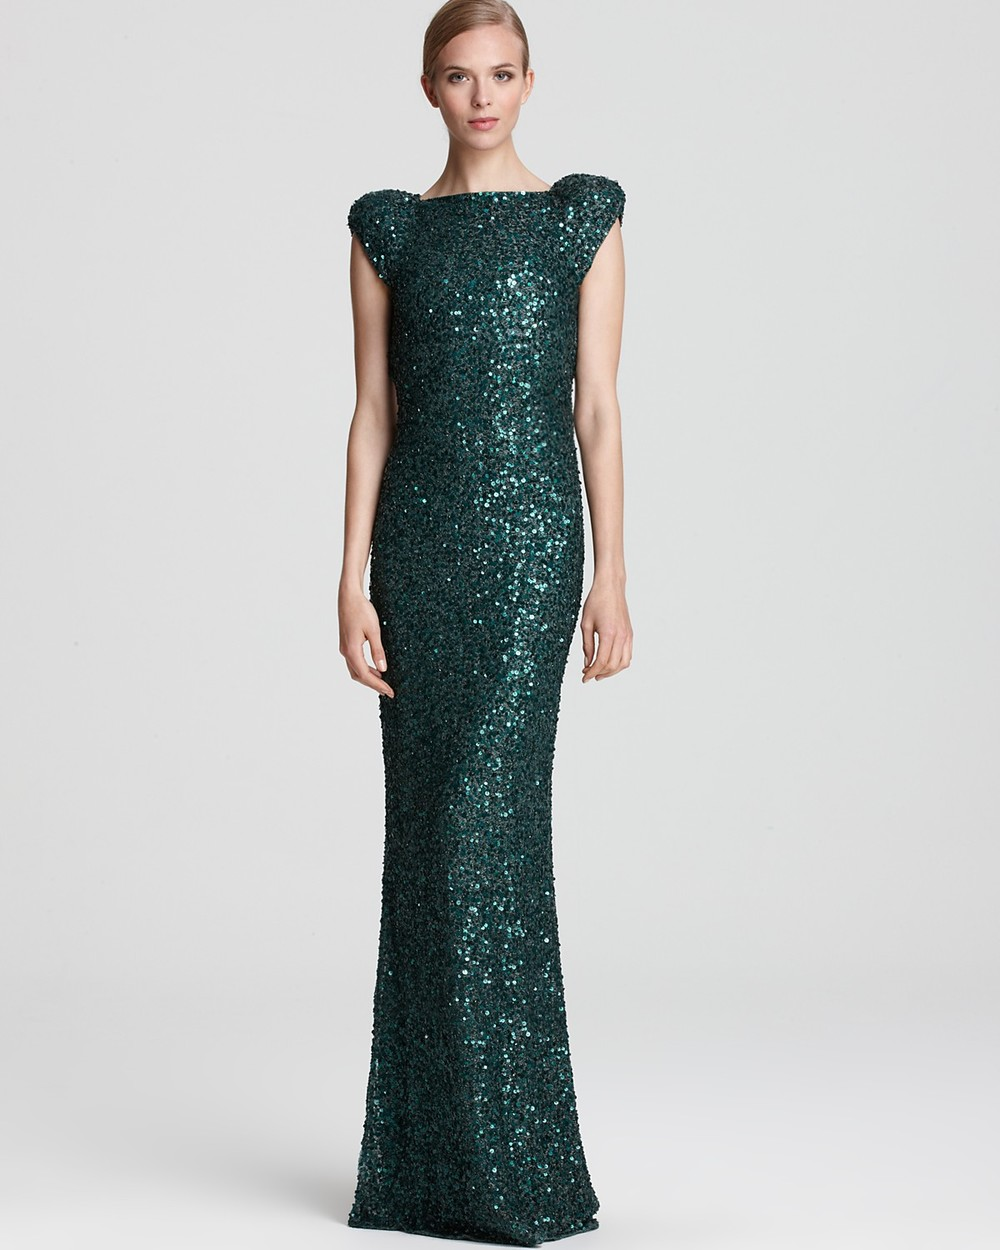 ABS by Allen Schwartz Sequin Gown - Cap Sleeve Open Back